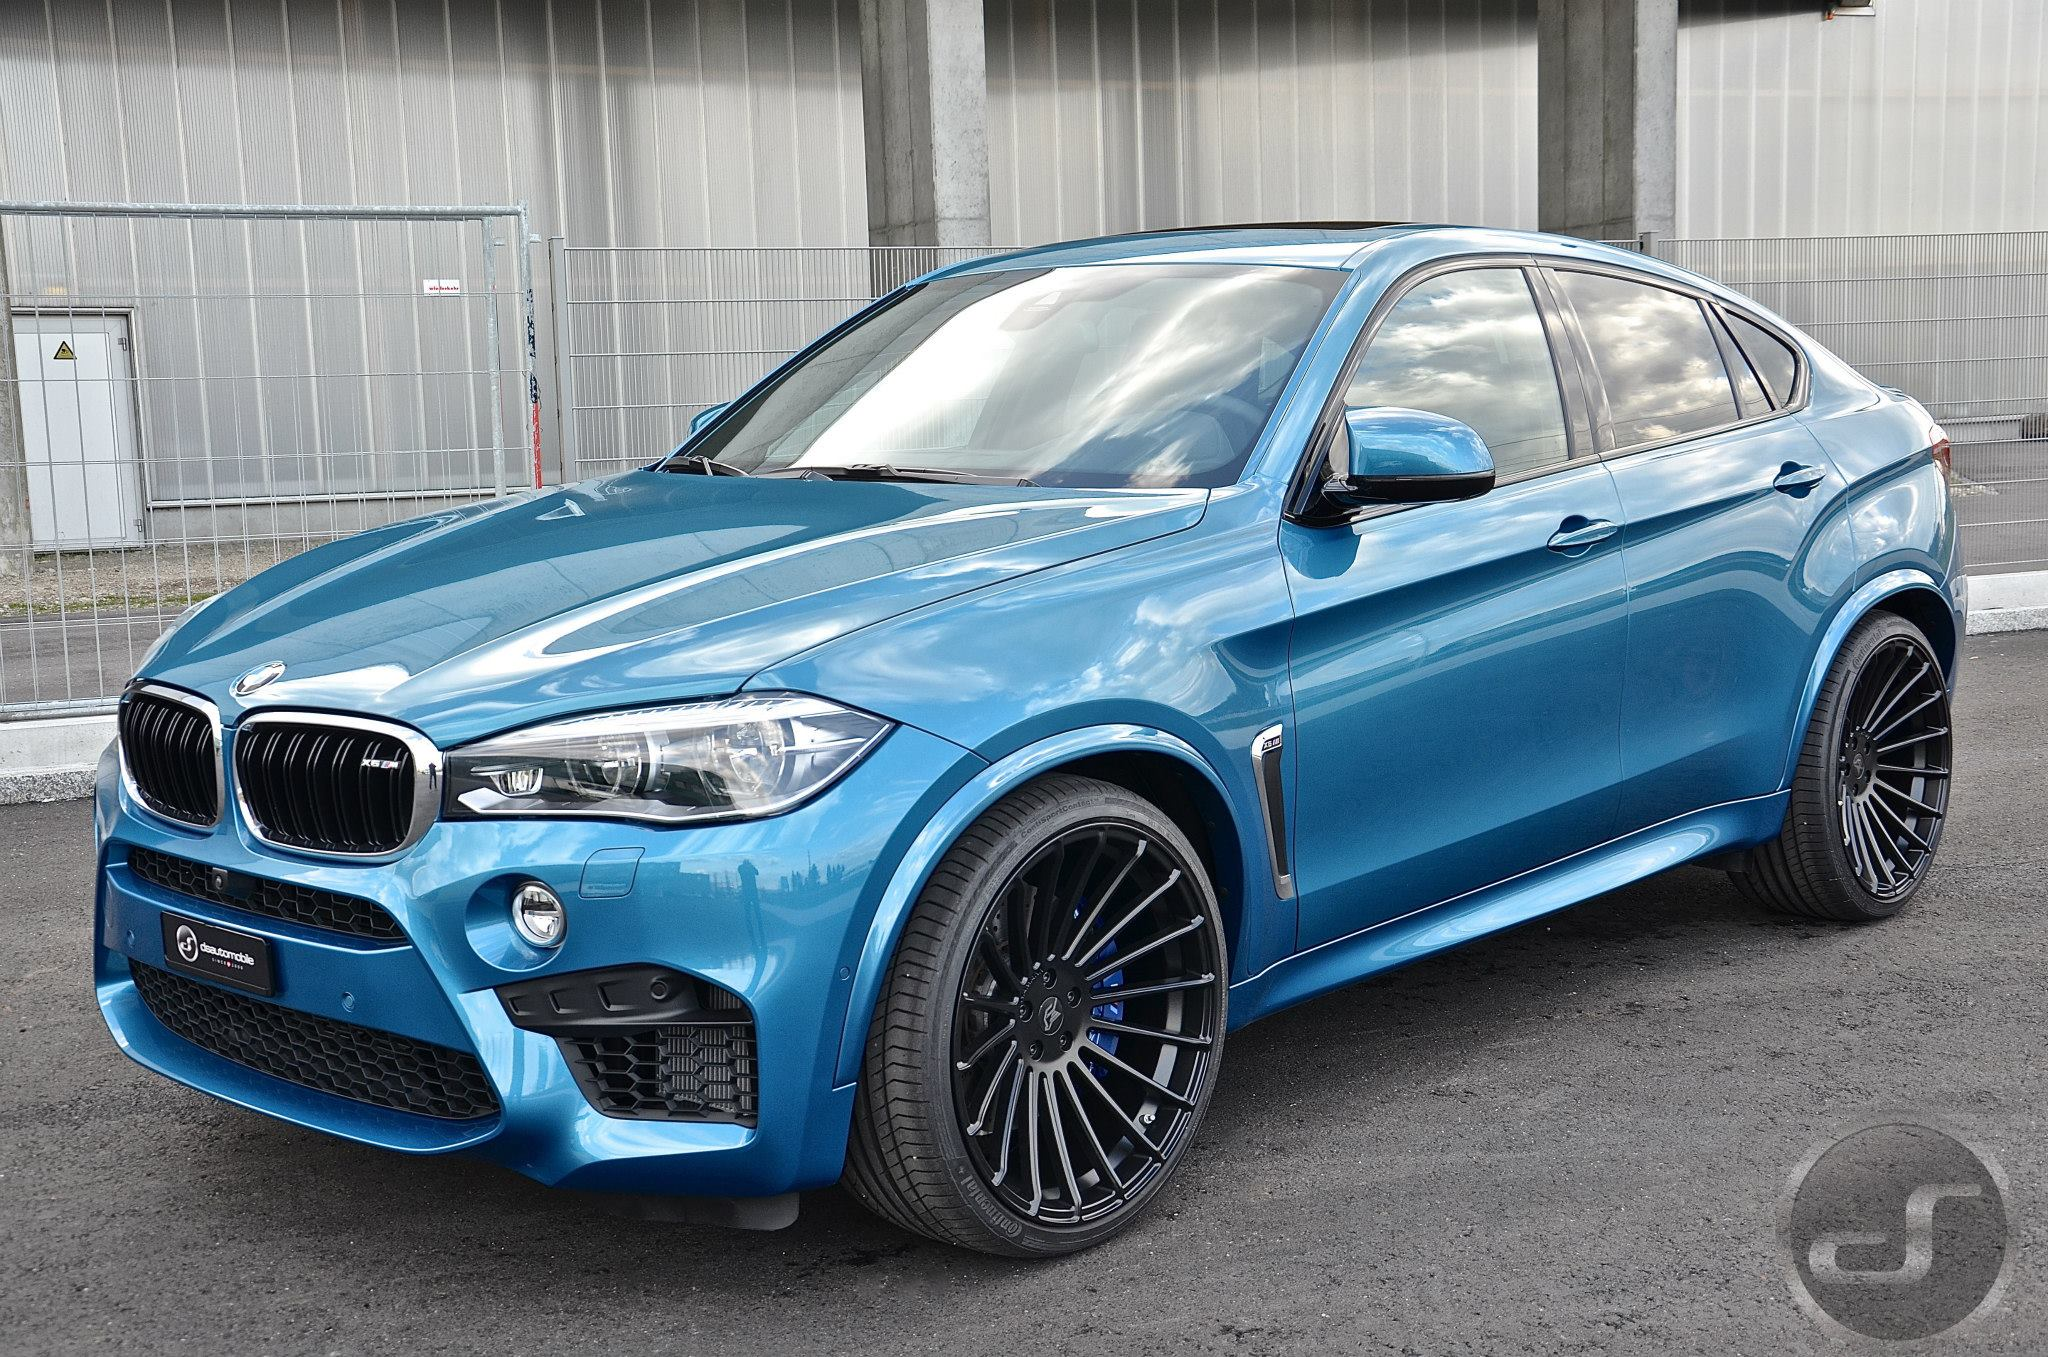 bmw x6 m photos informations articles. Black Bedroom Furniture Sets. Home Design Ideas